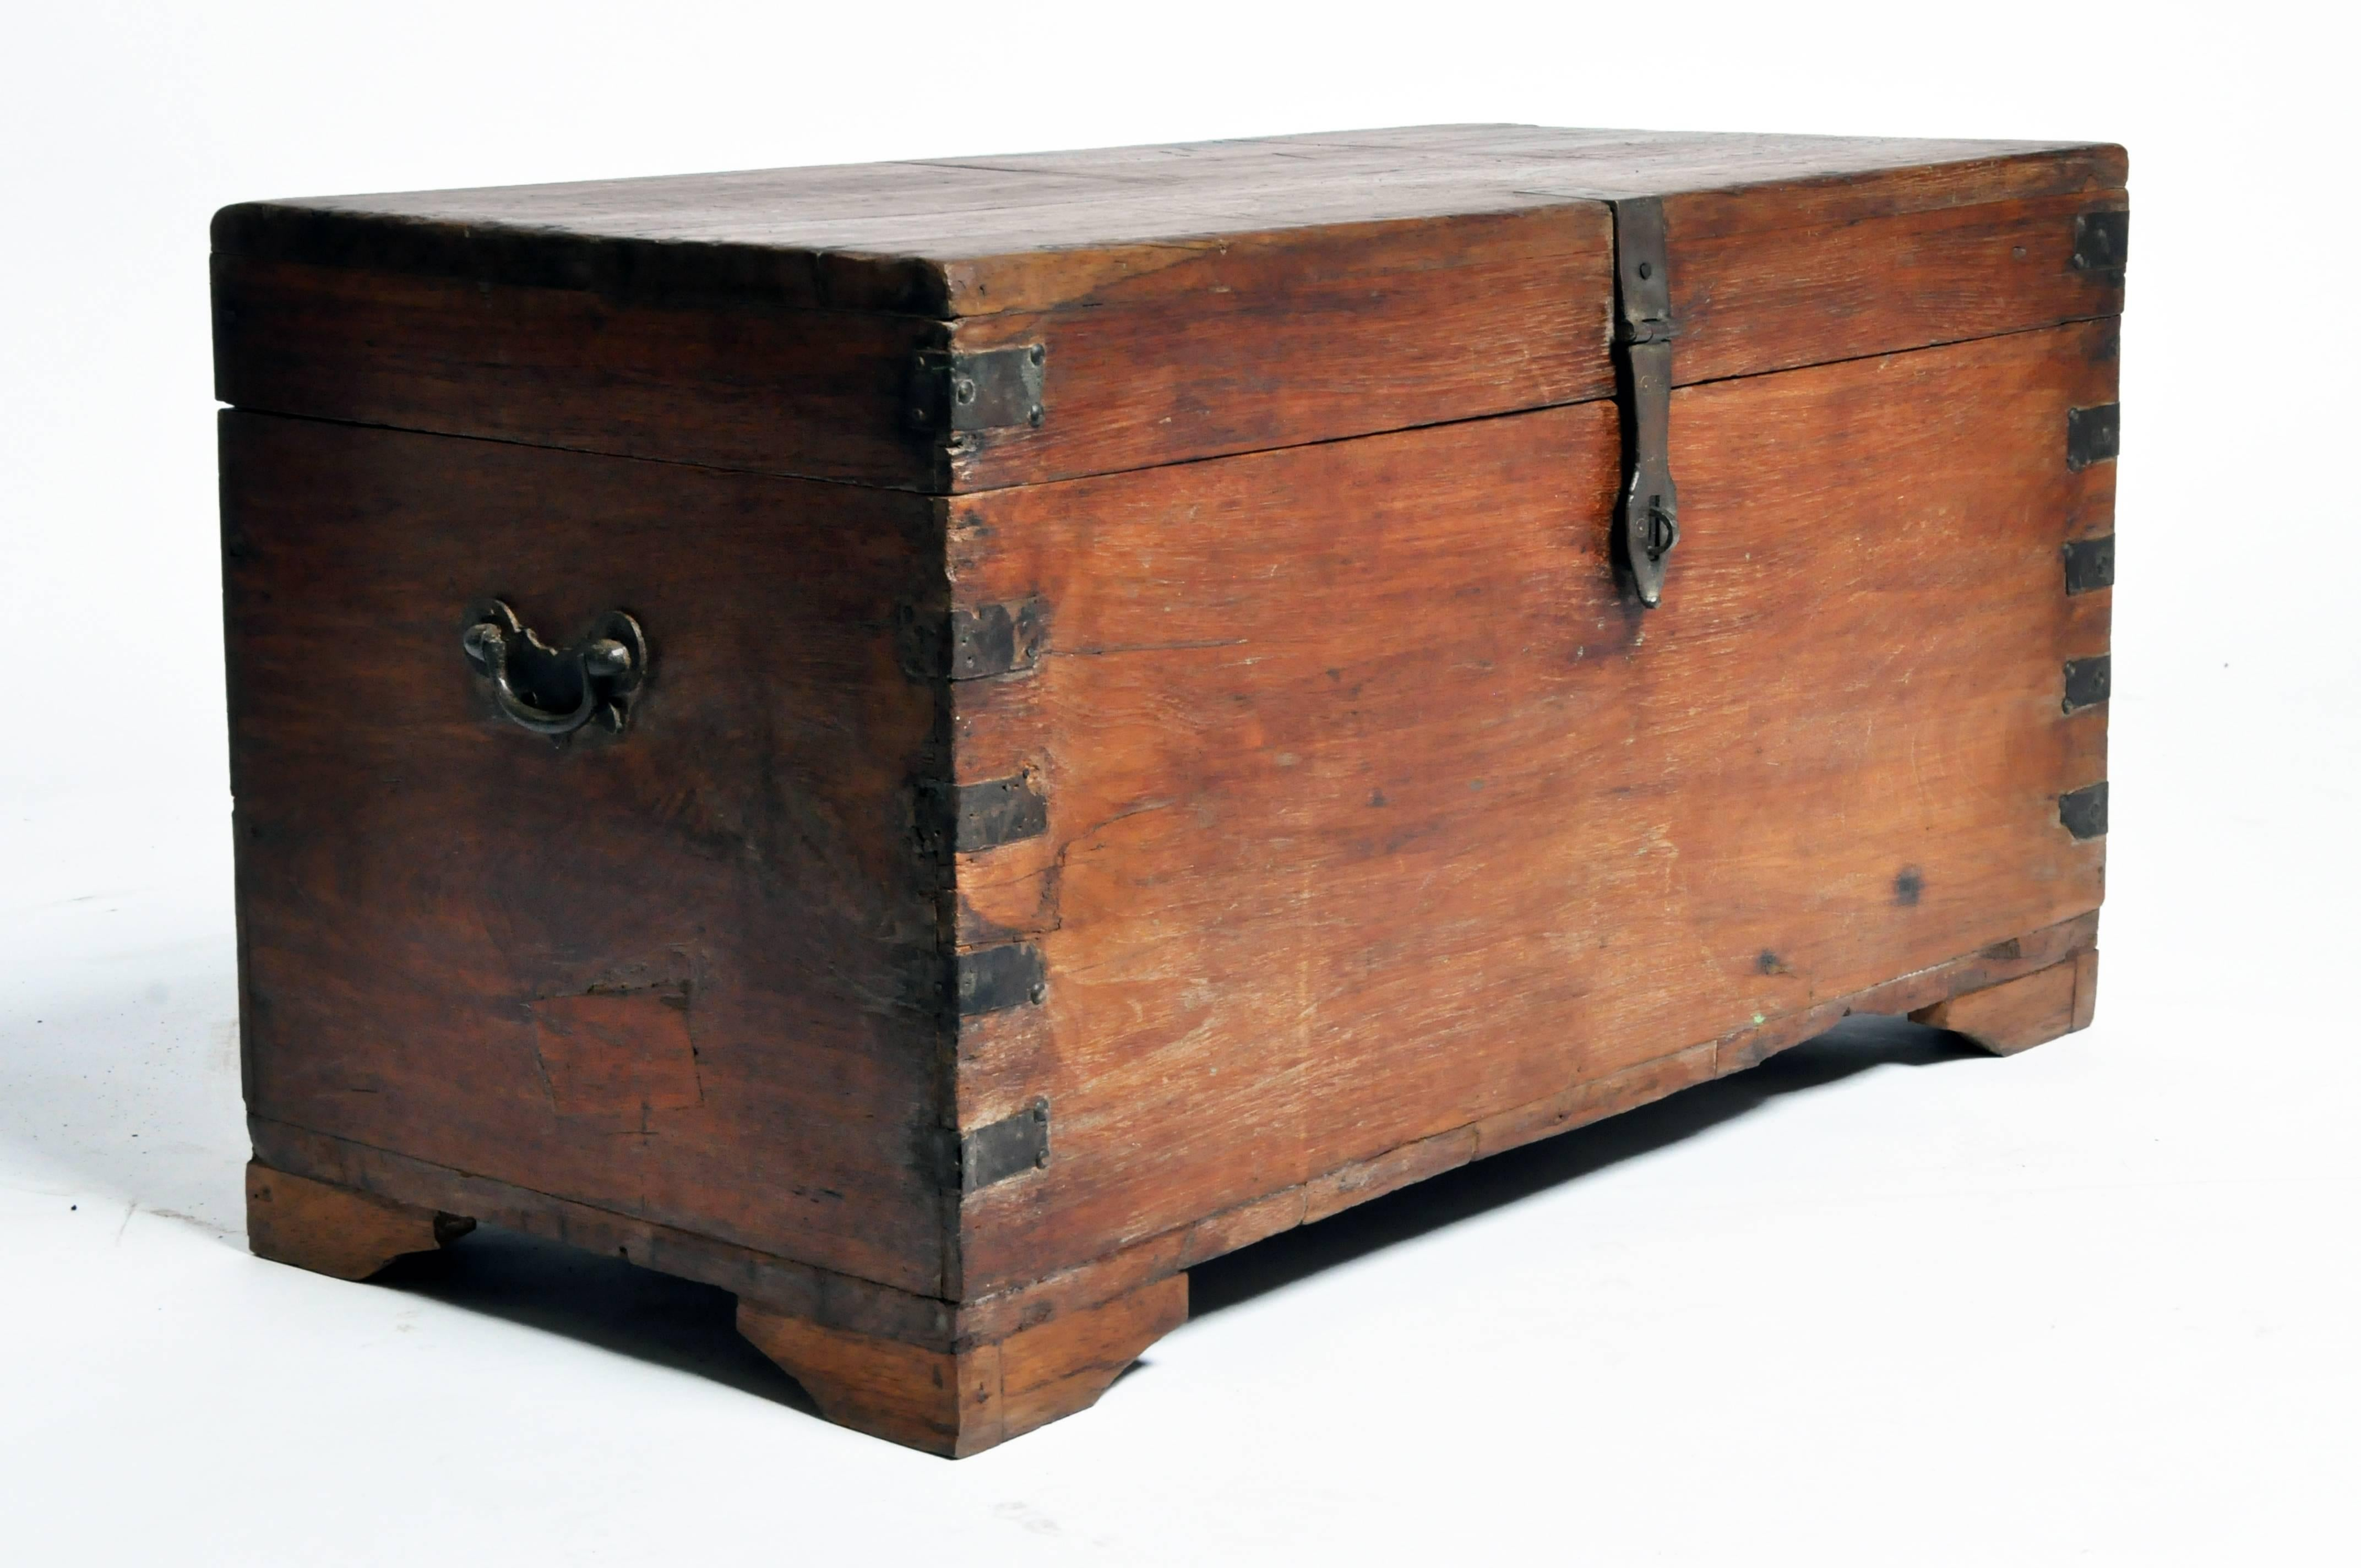 Wooden Storage Box With Metal Trim For Sale At 1stdibs